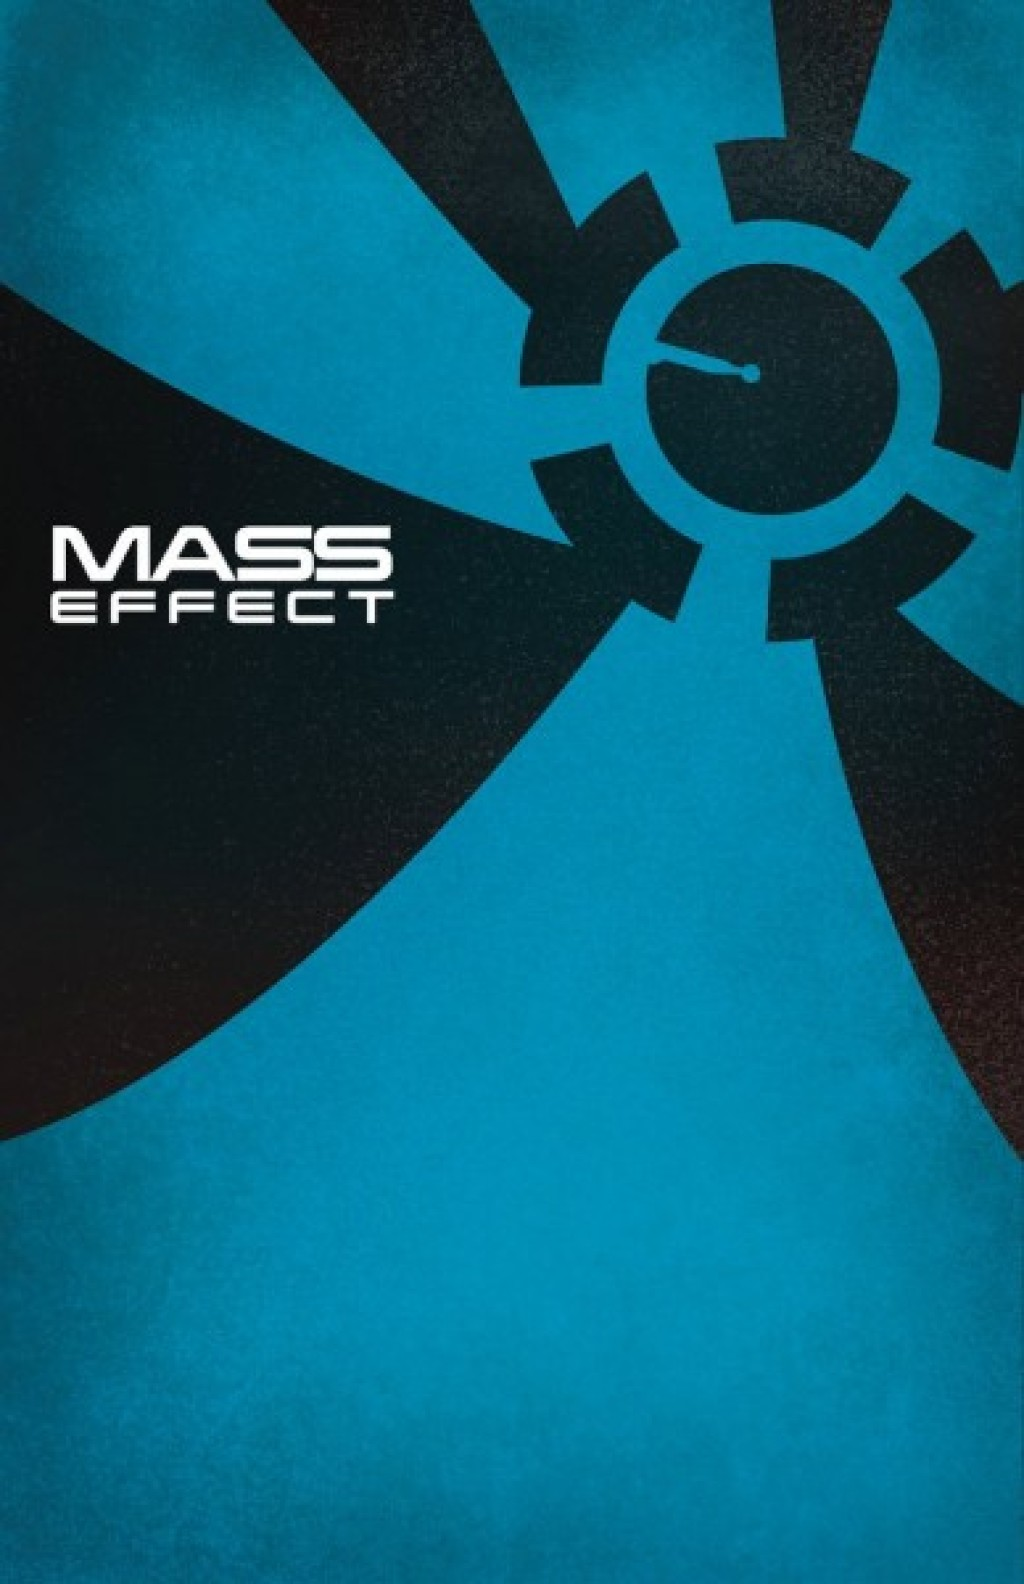 mass-effect-video-game-poster-by-dylan-west